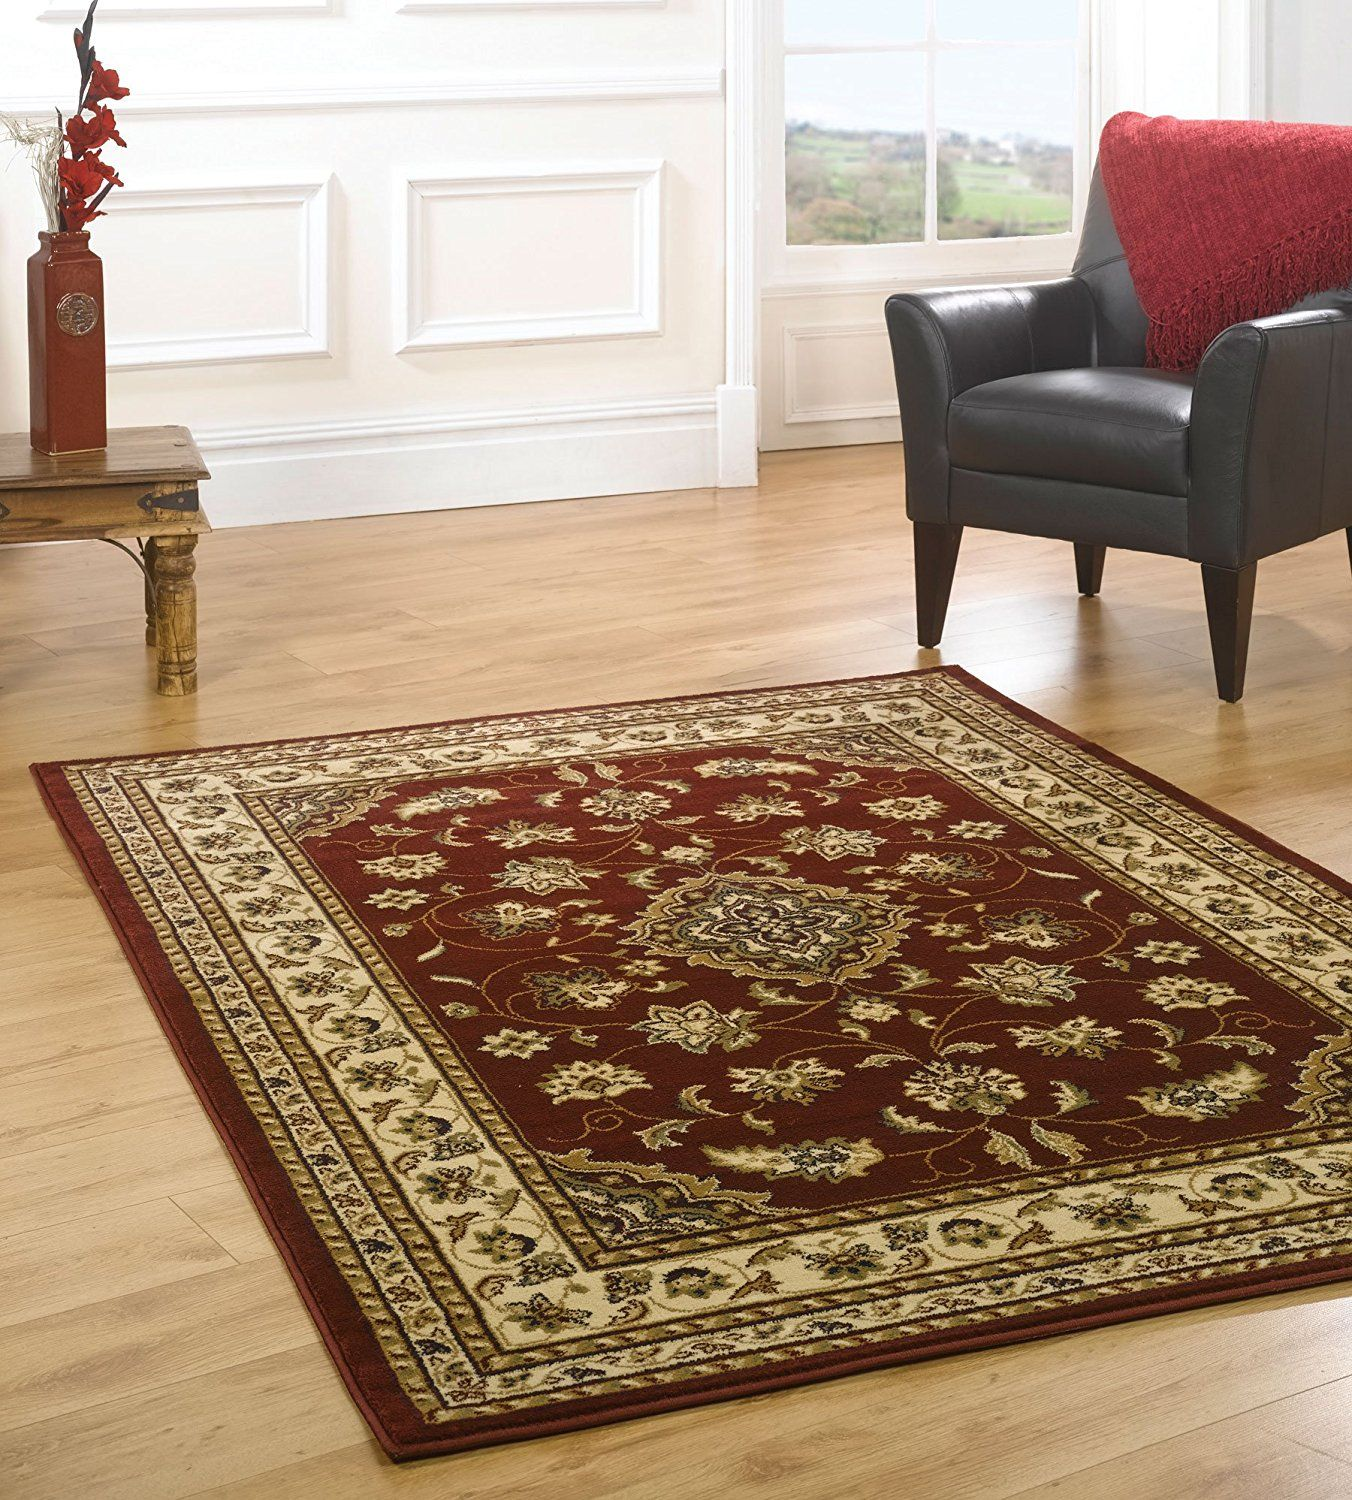 Very Large Quality Traditional Red Rug In 240 X 330 Cm 8 11